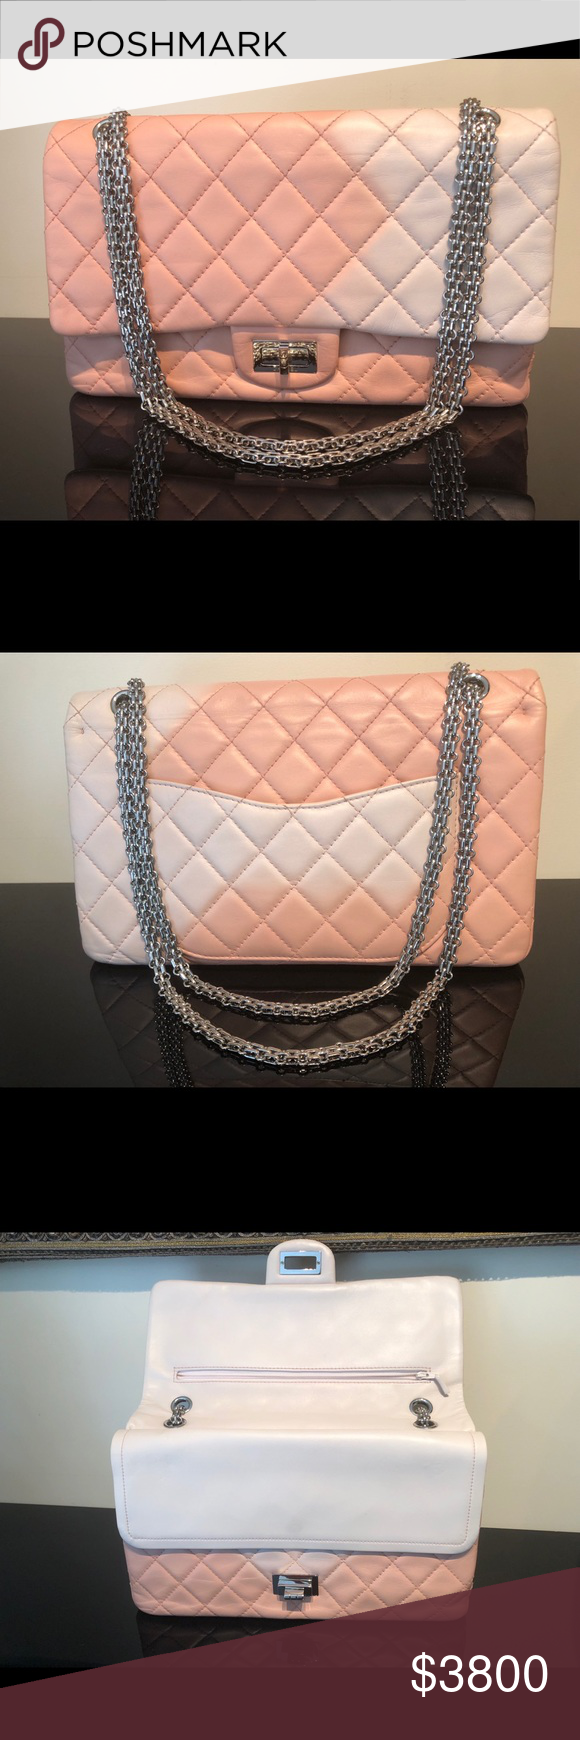 6488116cf542 NWOT CHANEL 2.55 Reissue 227 PRICE FIRM 🦄 C.H.A.N.E.L 🦄 NWOT 2.55 Reissue  227 Pink white quilted lambskin leather ombré double flap.